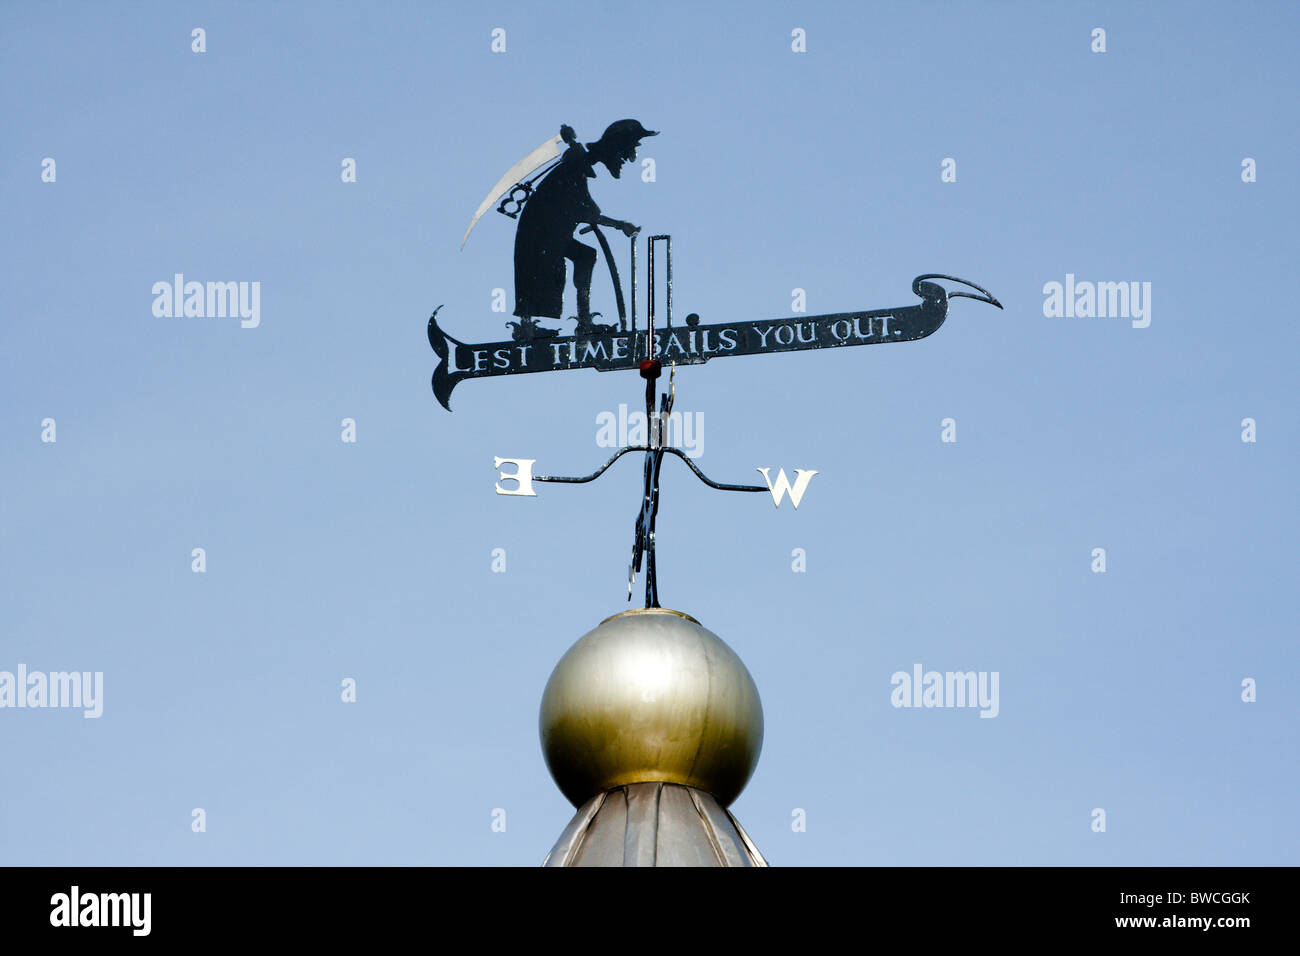 Lest time bails you out windvane atop cricket pavillion in Durham - Stock Image